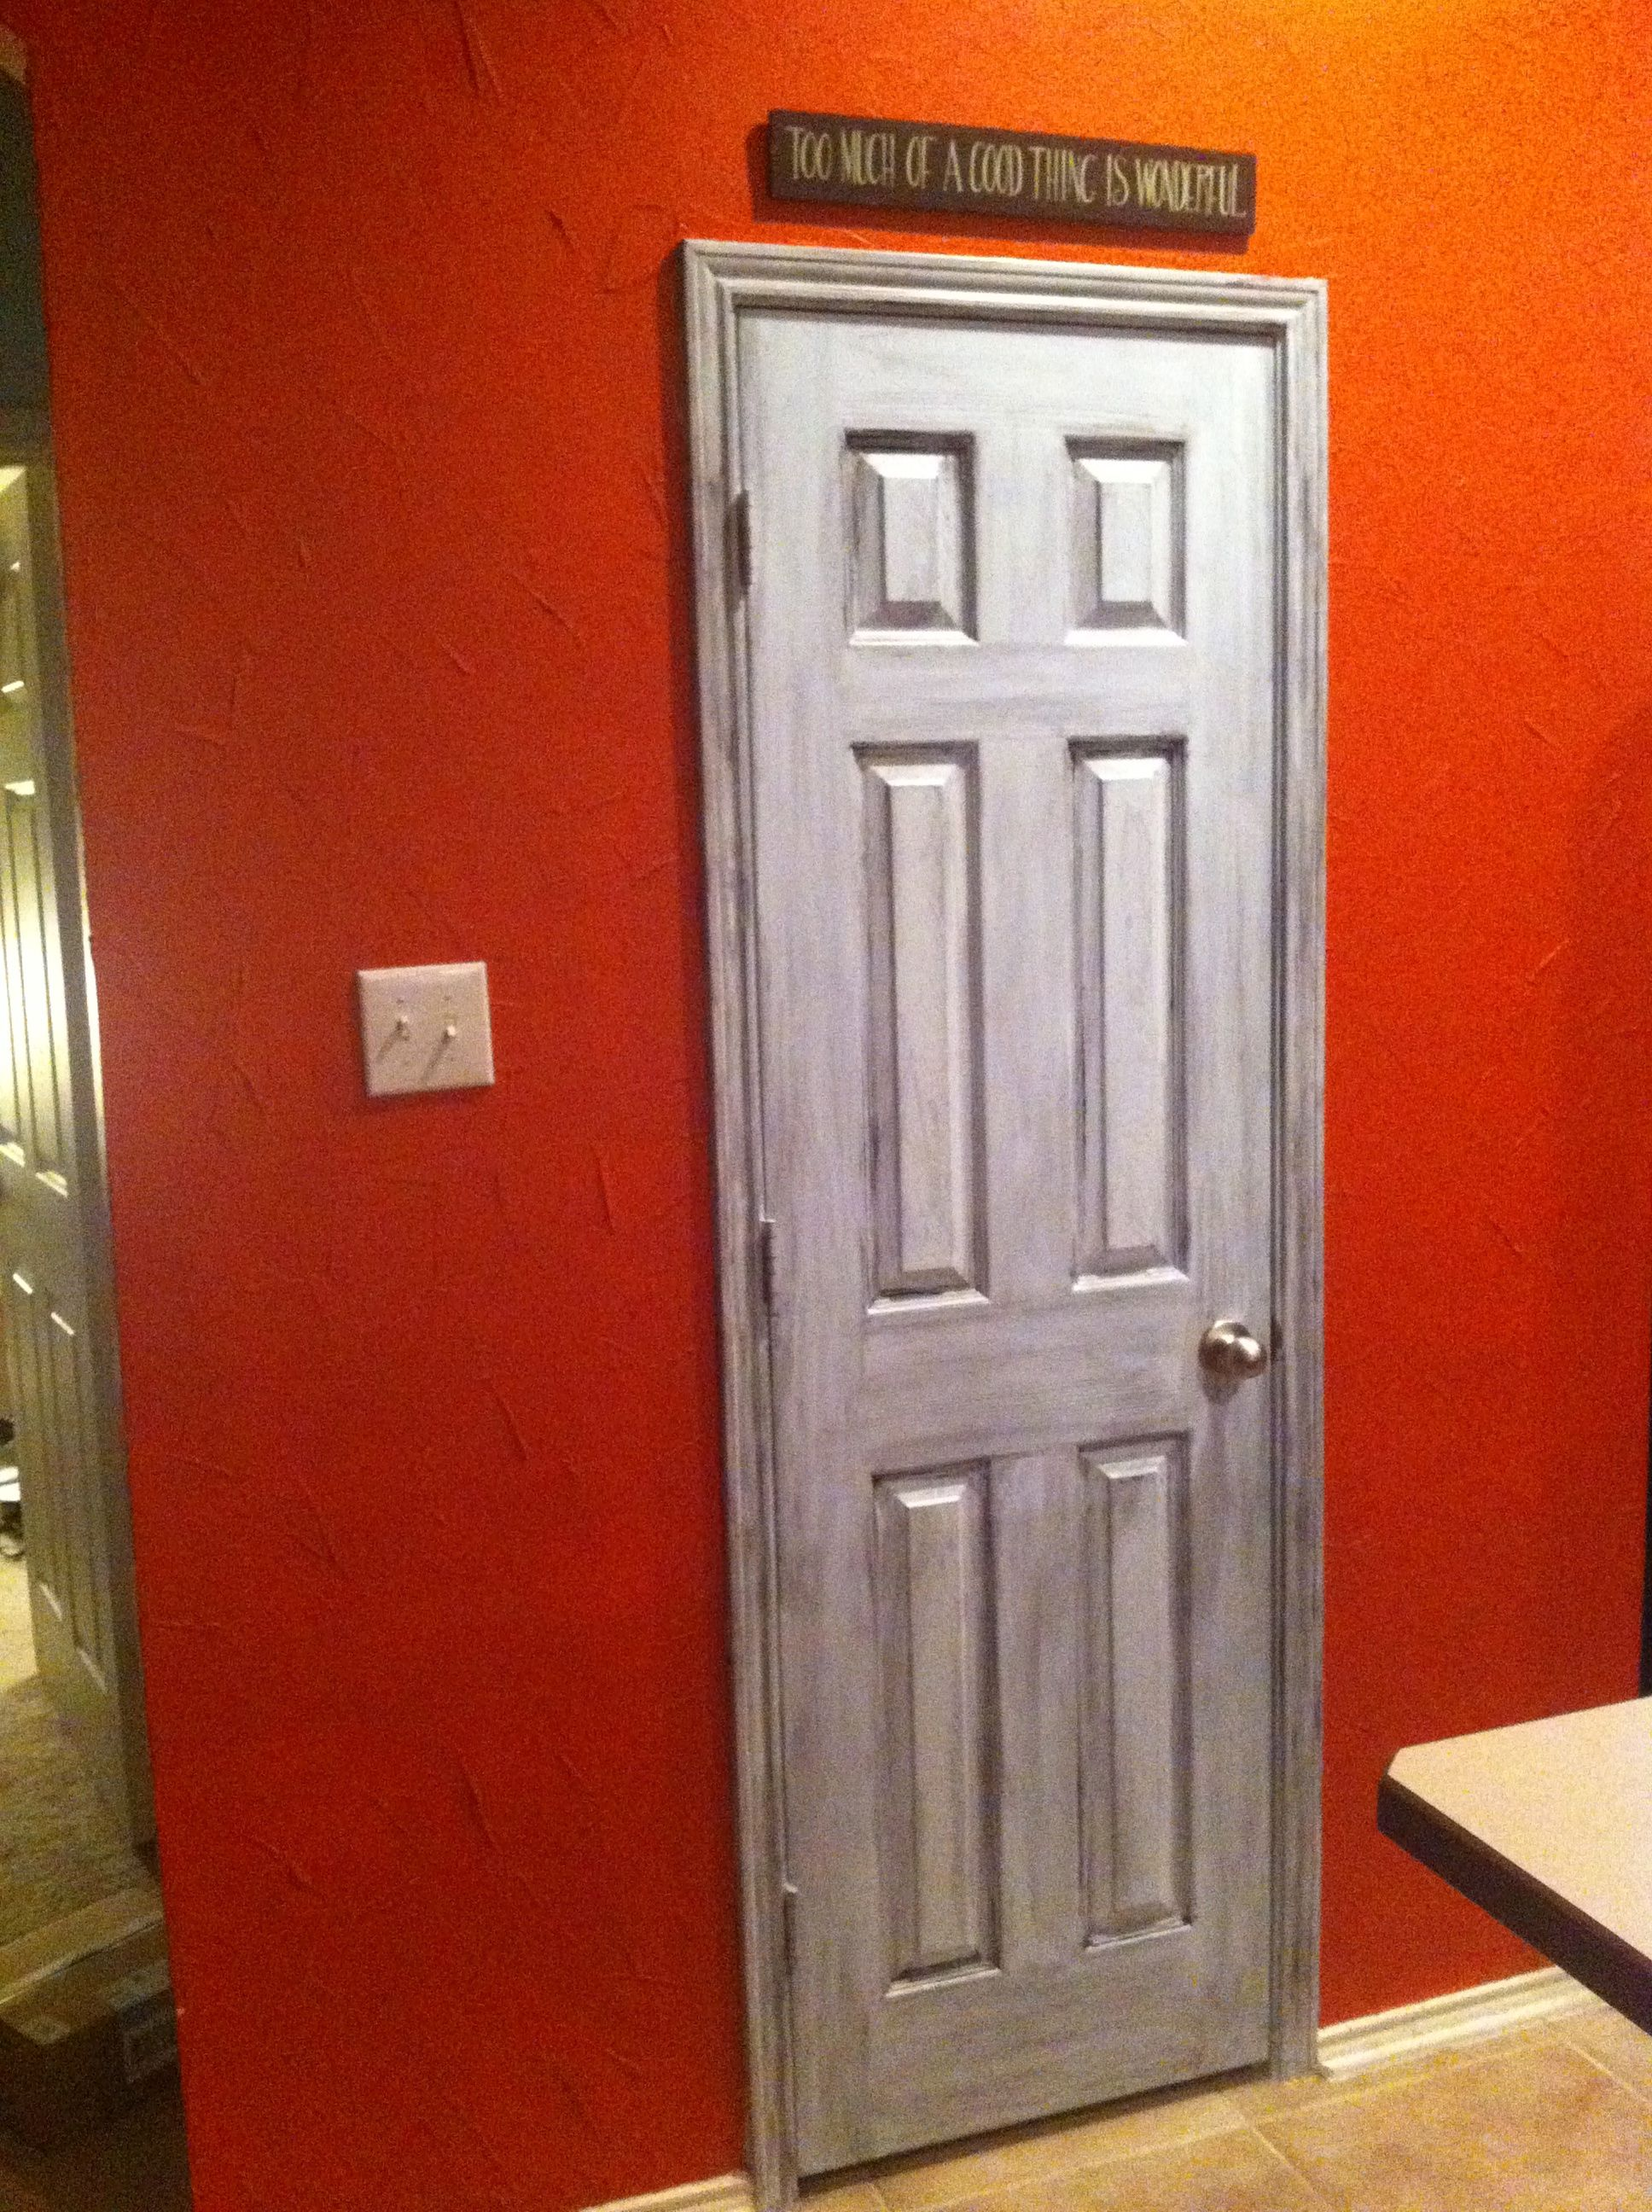 My newly painted pantry door!    Base Color - Behr Mineral Water Blue  Glaze - Behr Lamp Black  Both colors in satin finish